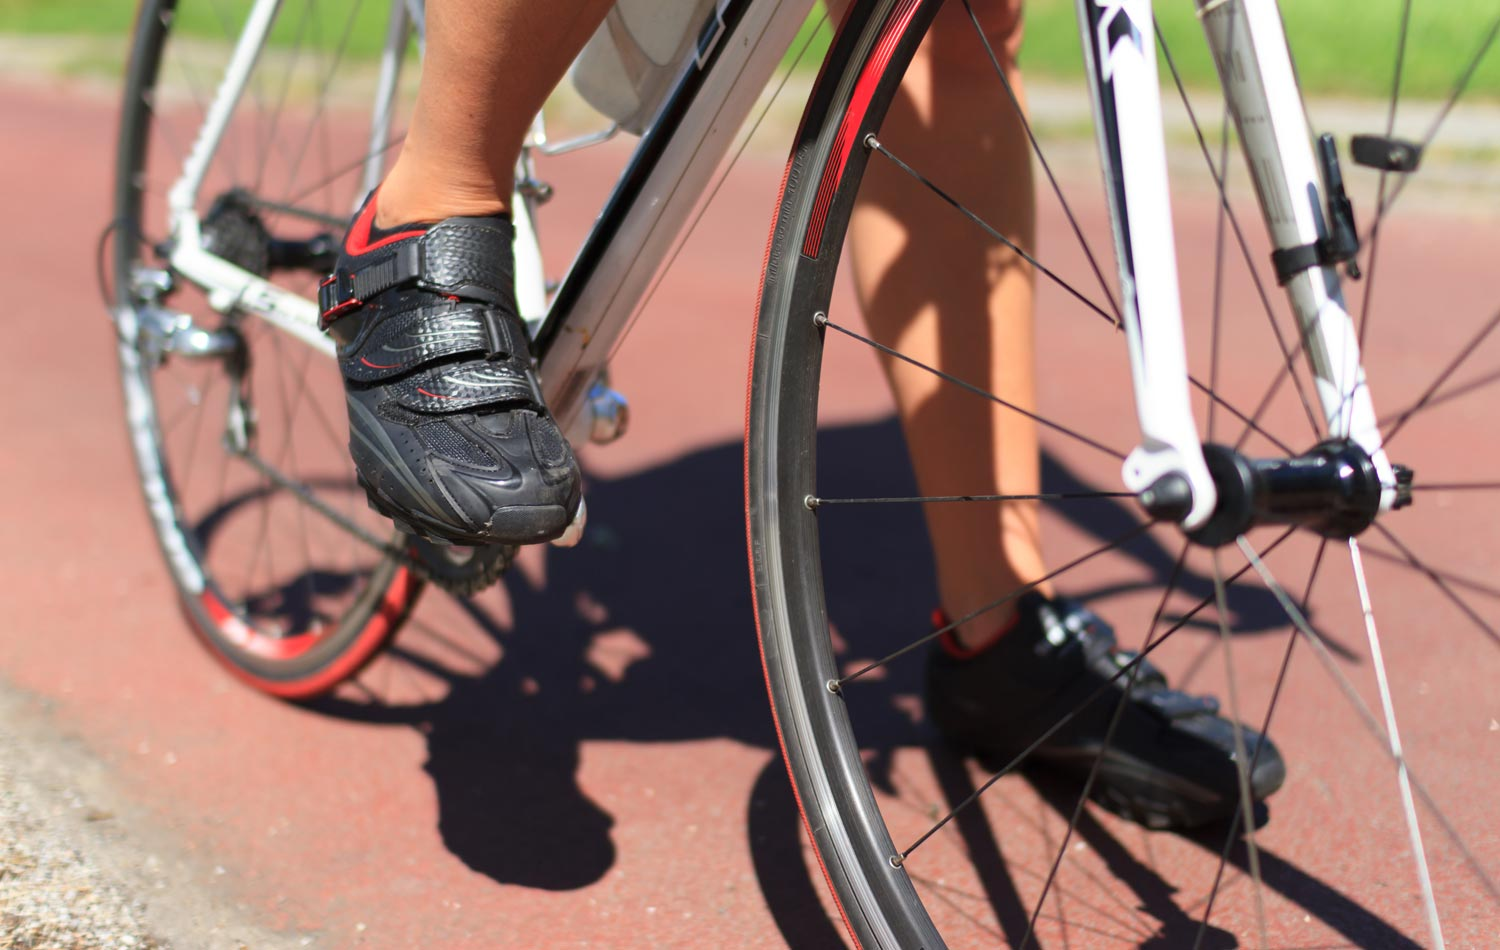 Six Causes of Foot Pain,  Numbness, and Hot-Foot During Bicycling, and How to Solve Them